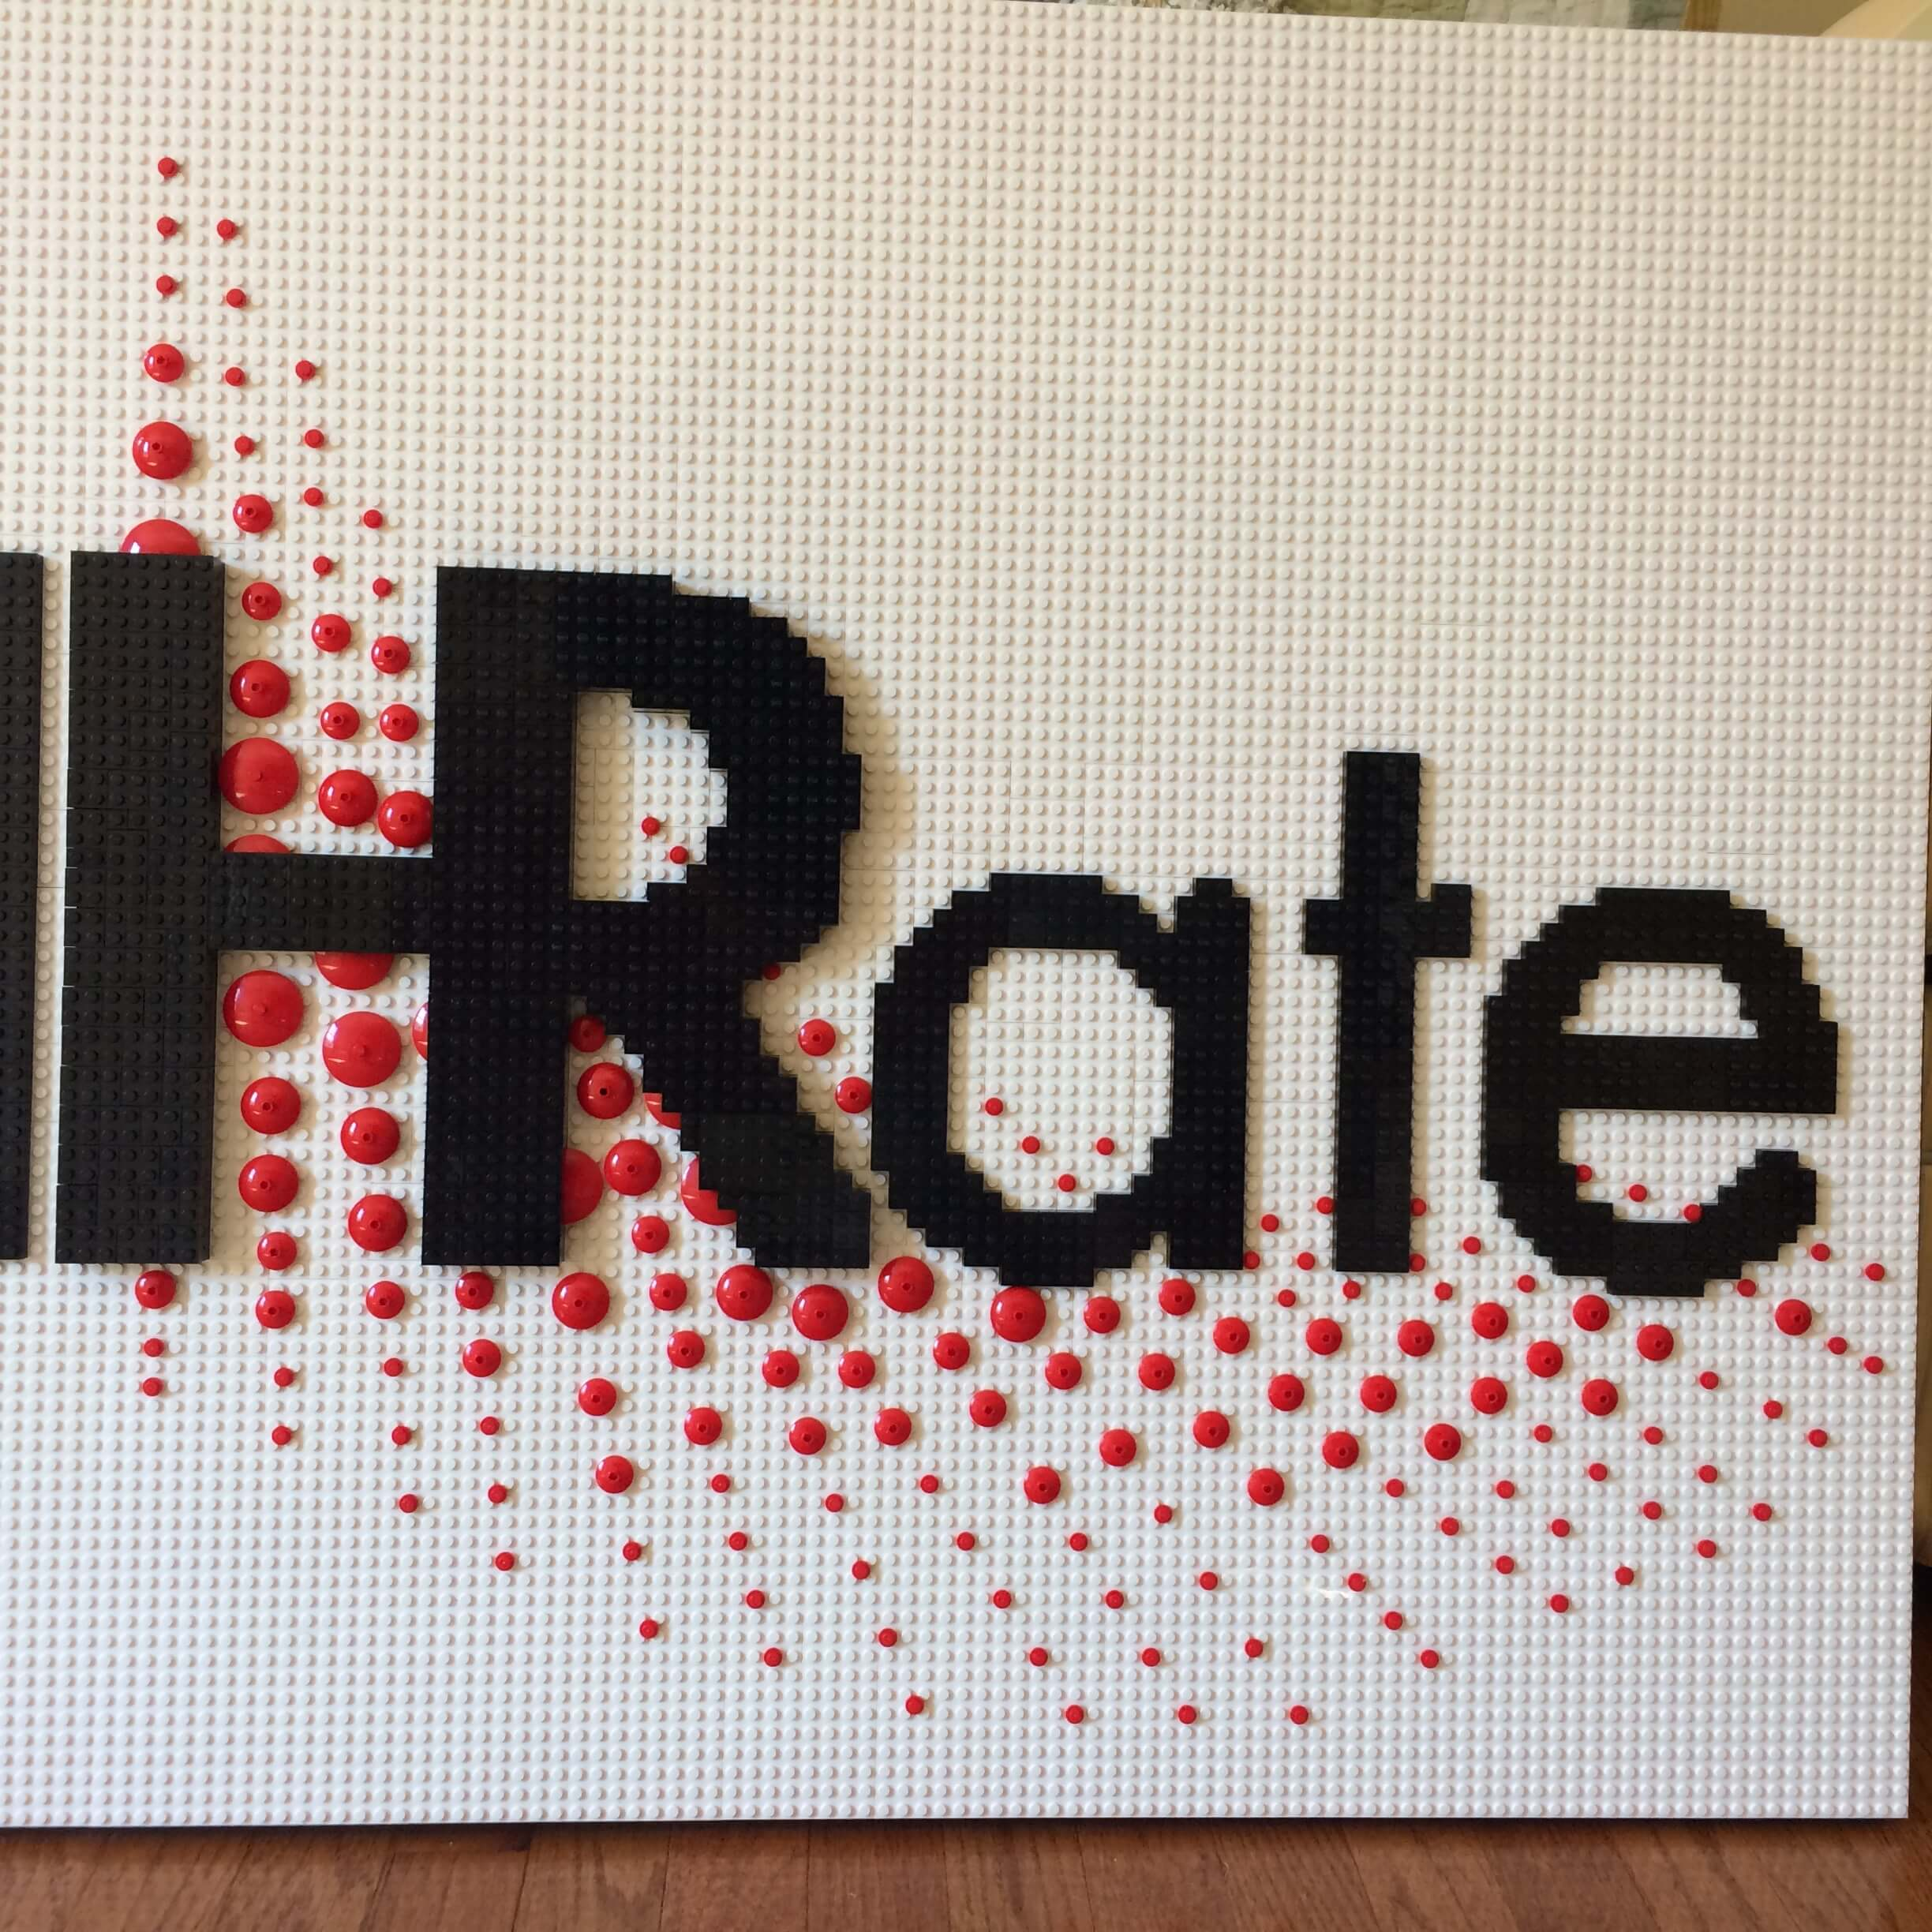 lego-office-decor-logo-accelhrate (3)